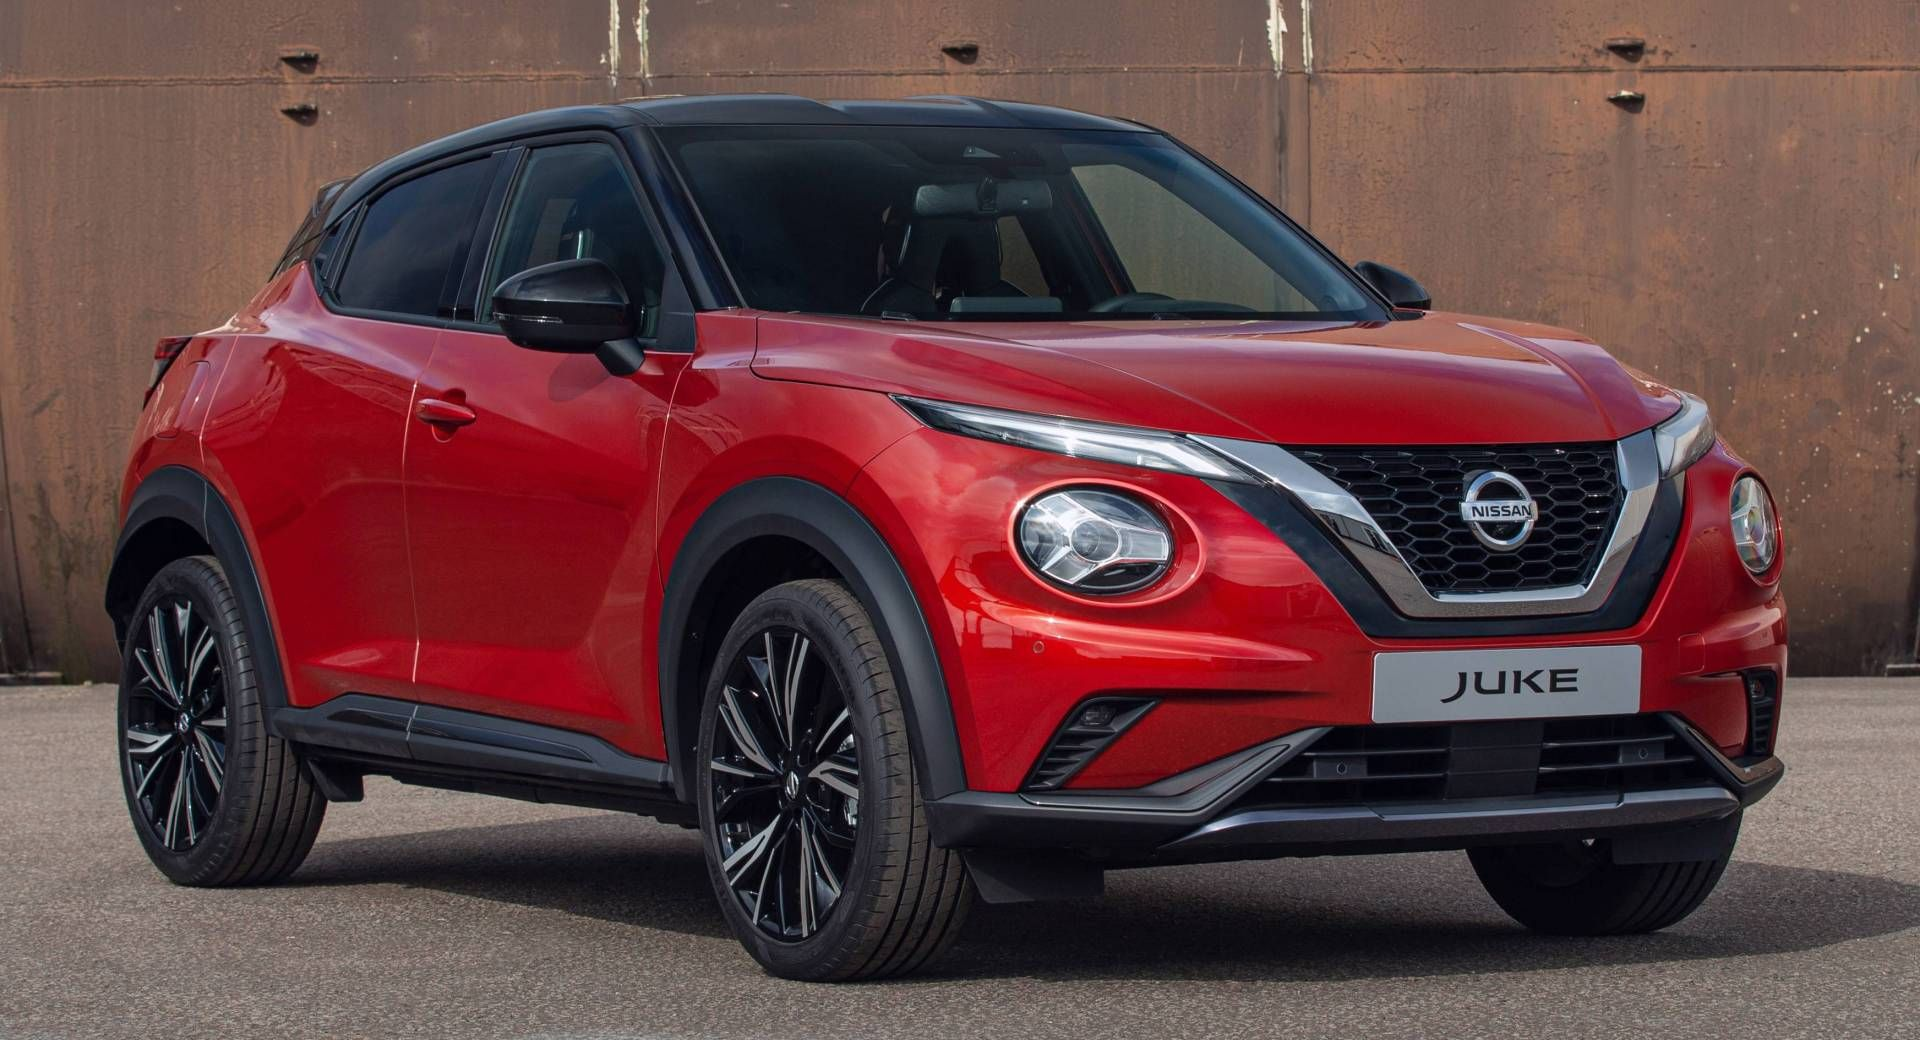 All New 2020 Nissan Juke Grows Up Without Losing Its Quirky Looks Carscoops Nissan Juke Nissan Juke Nismo Nissan